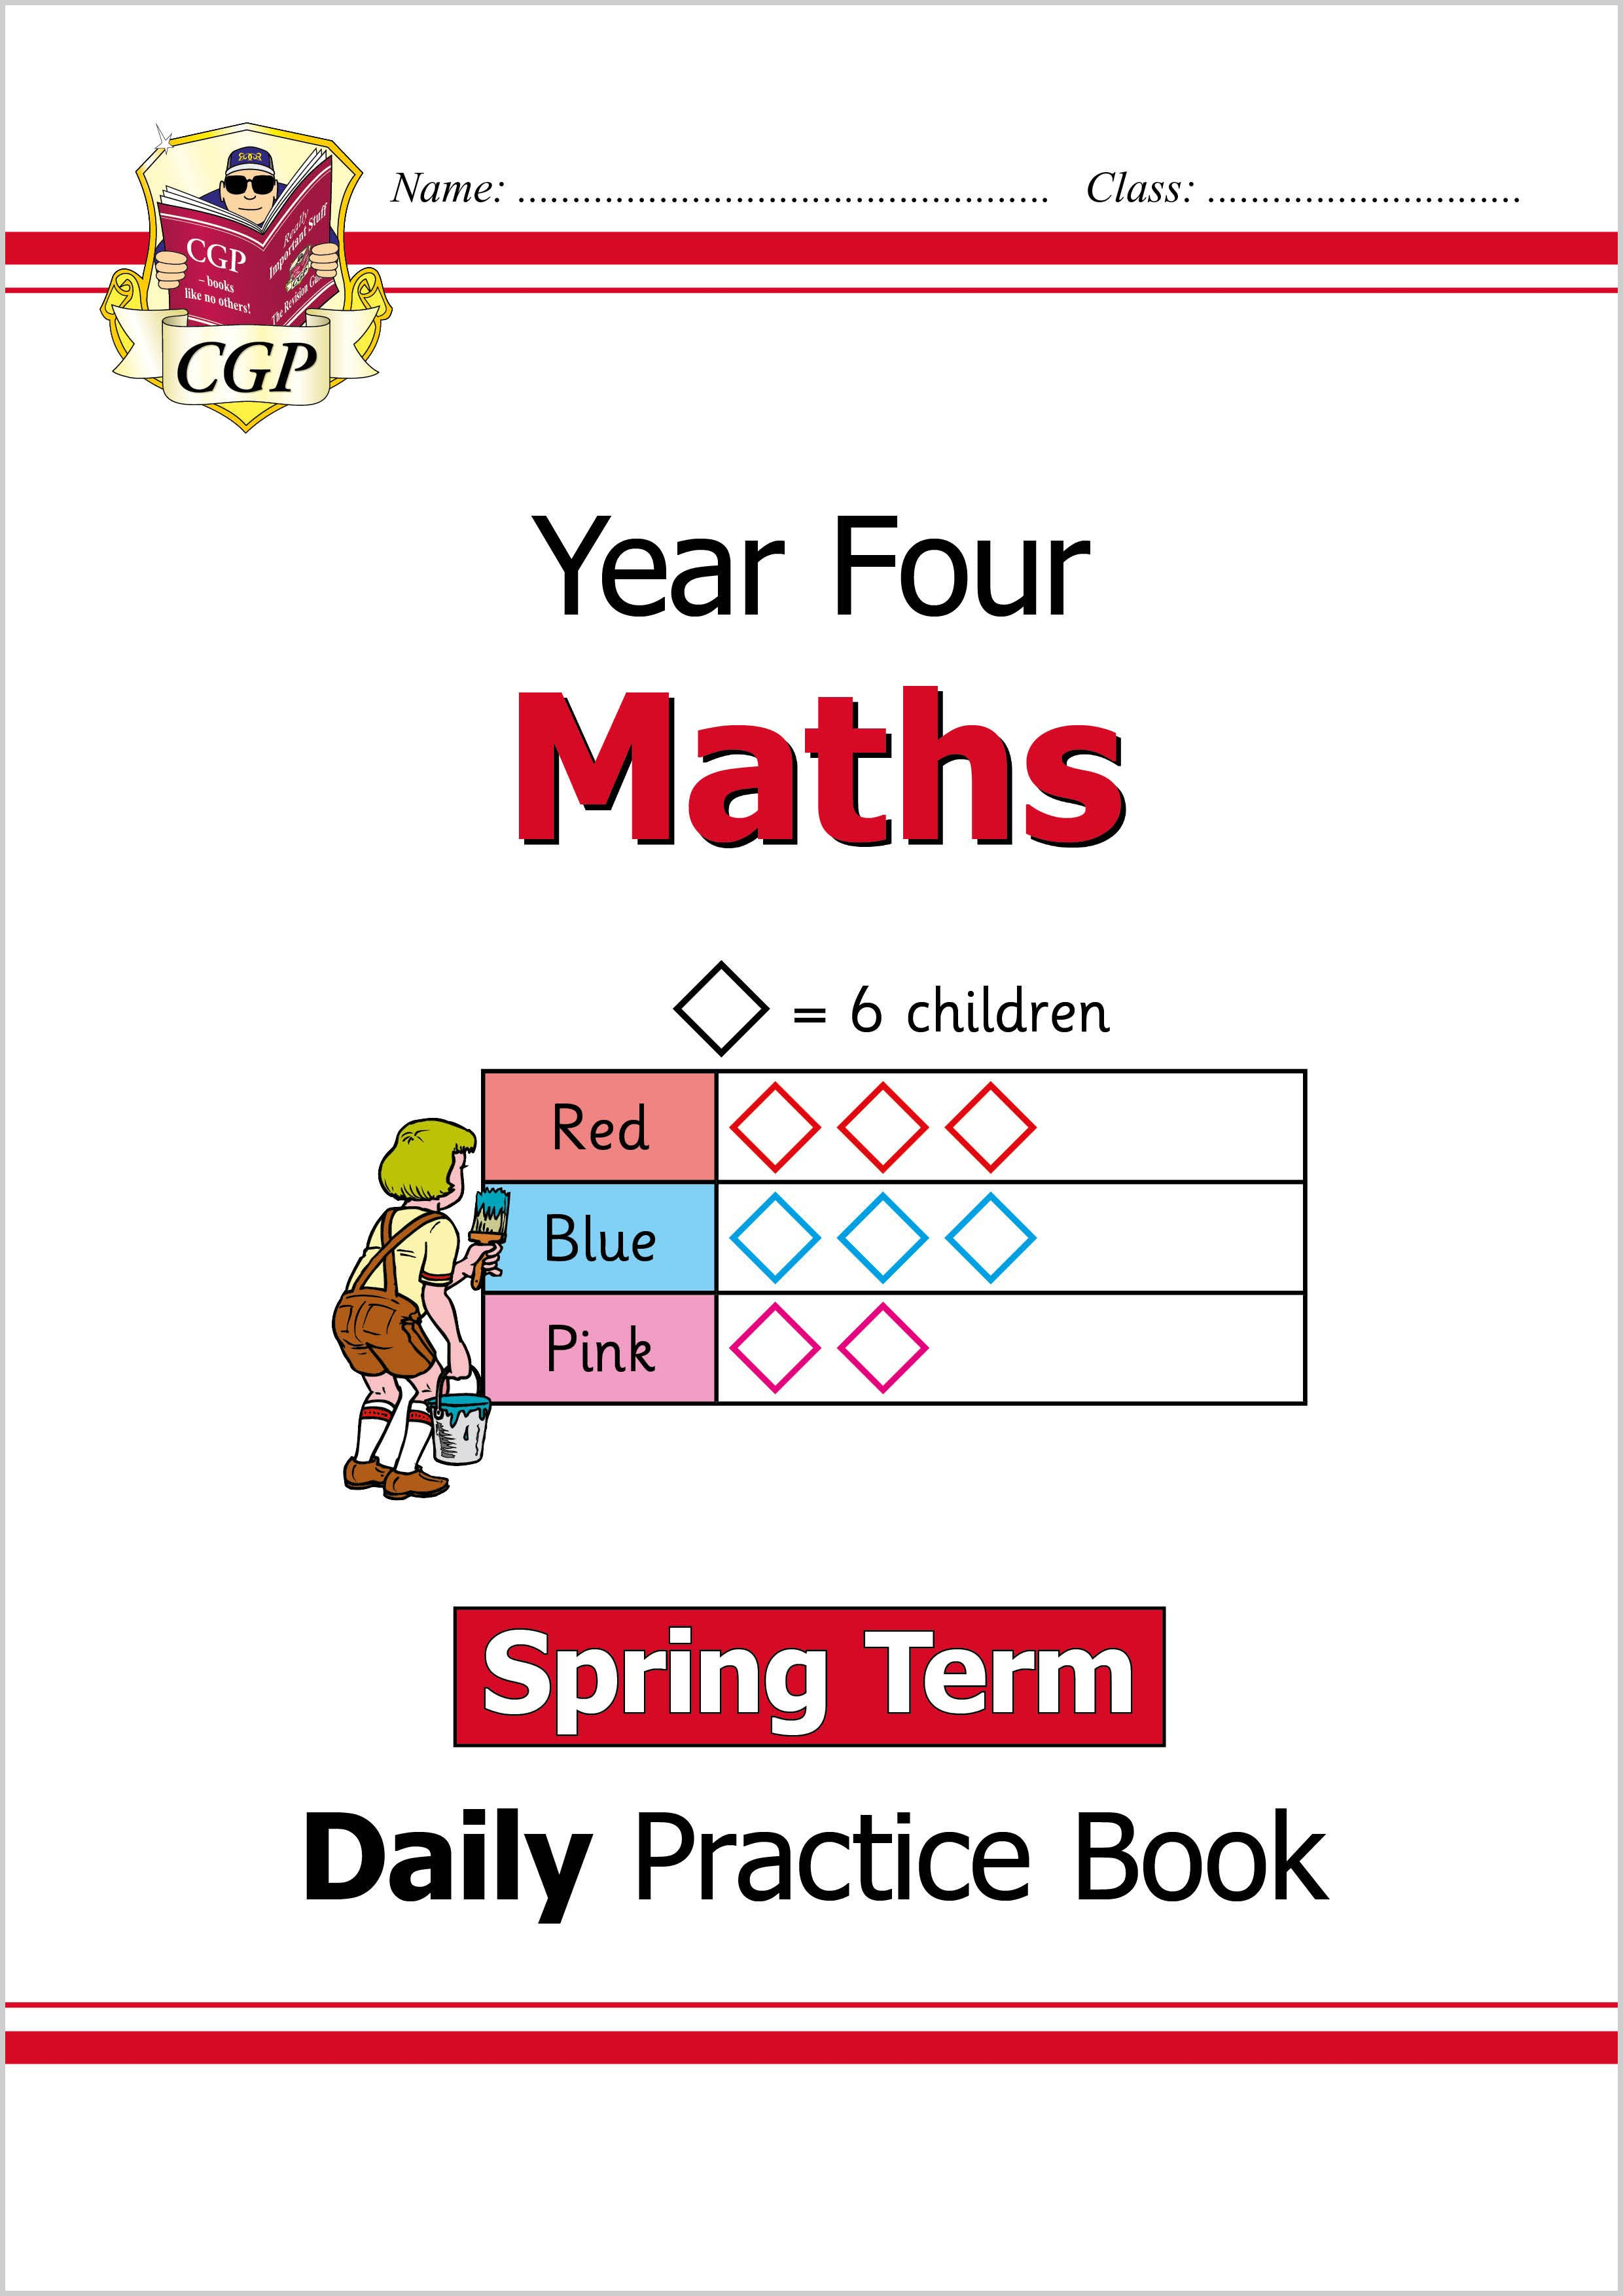 M4WSP21 - New KS2 Maths Daily Practice Book: Year 4 - Spring Term